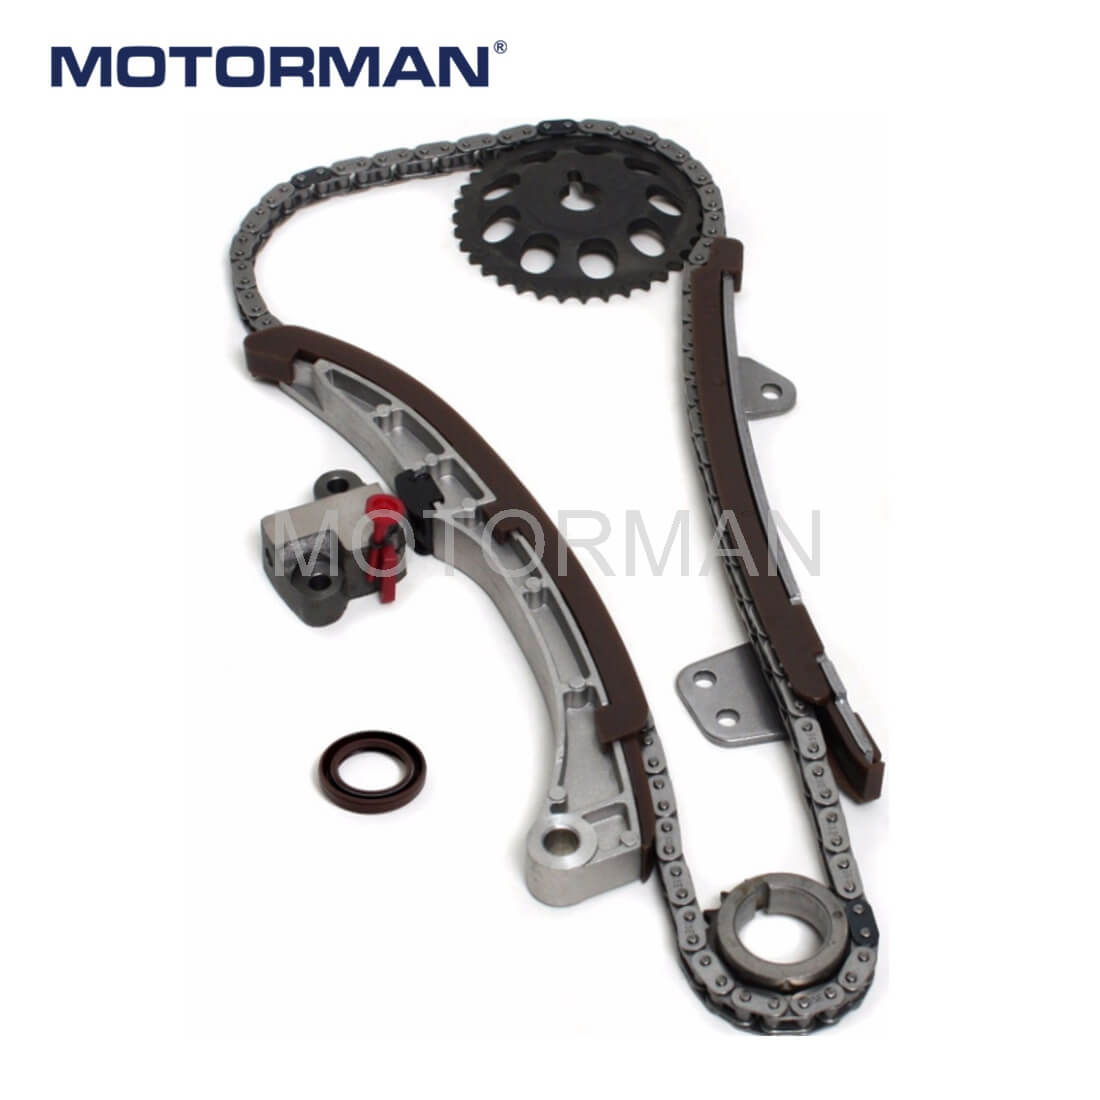 Motorman Timing Chain Kits 13506-21020